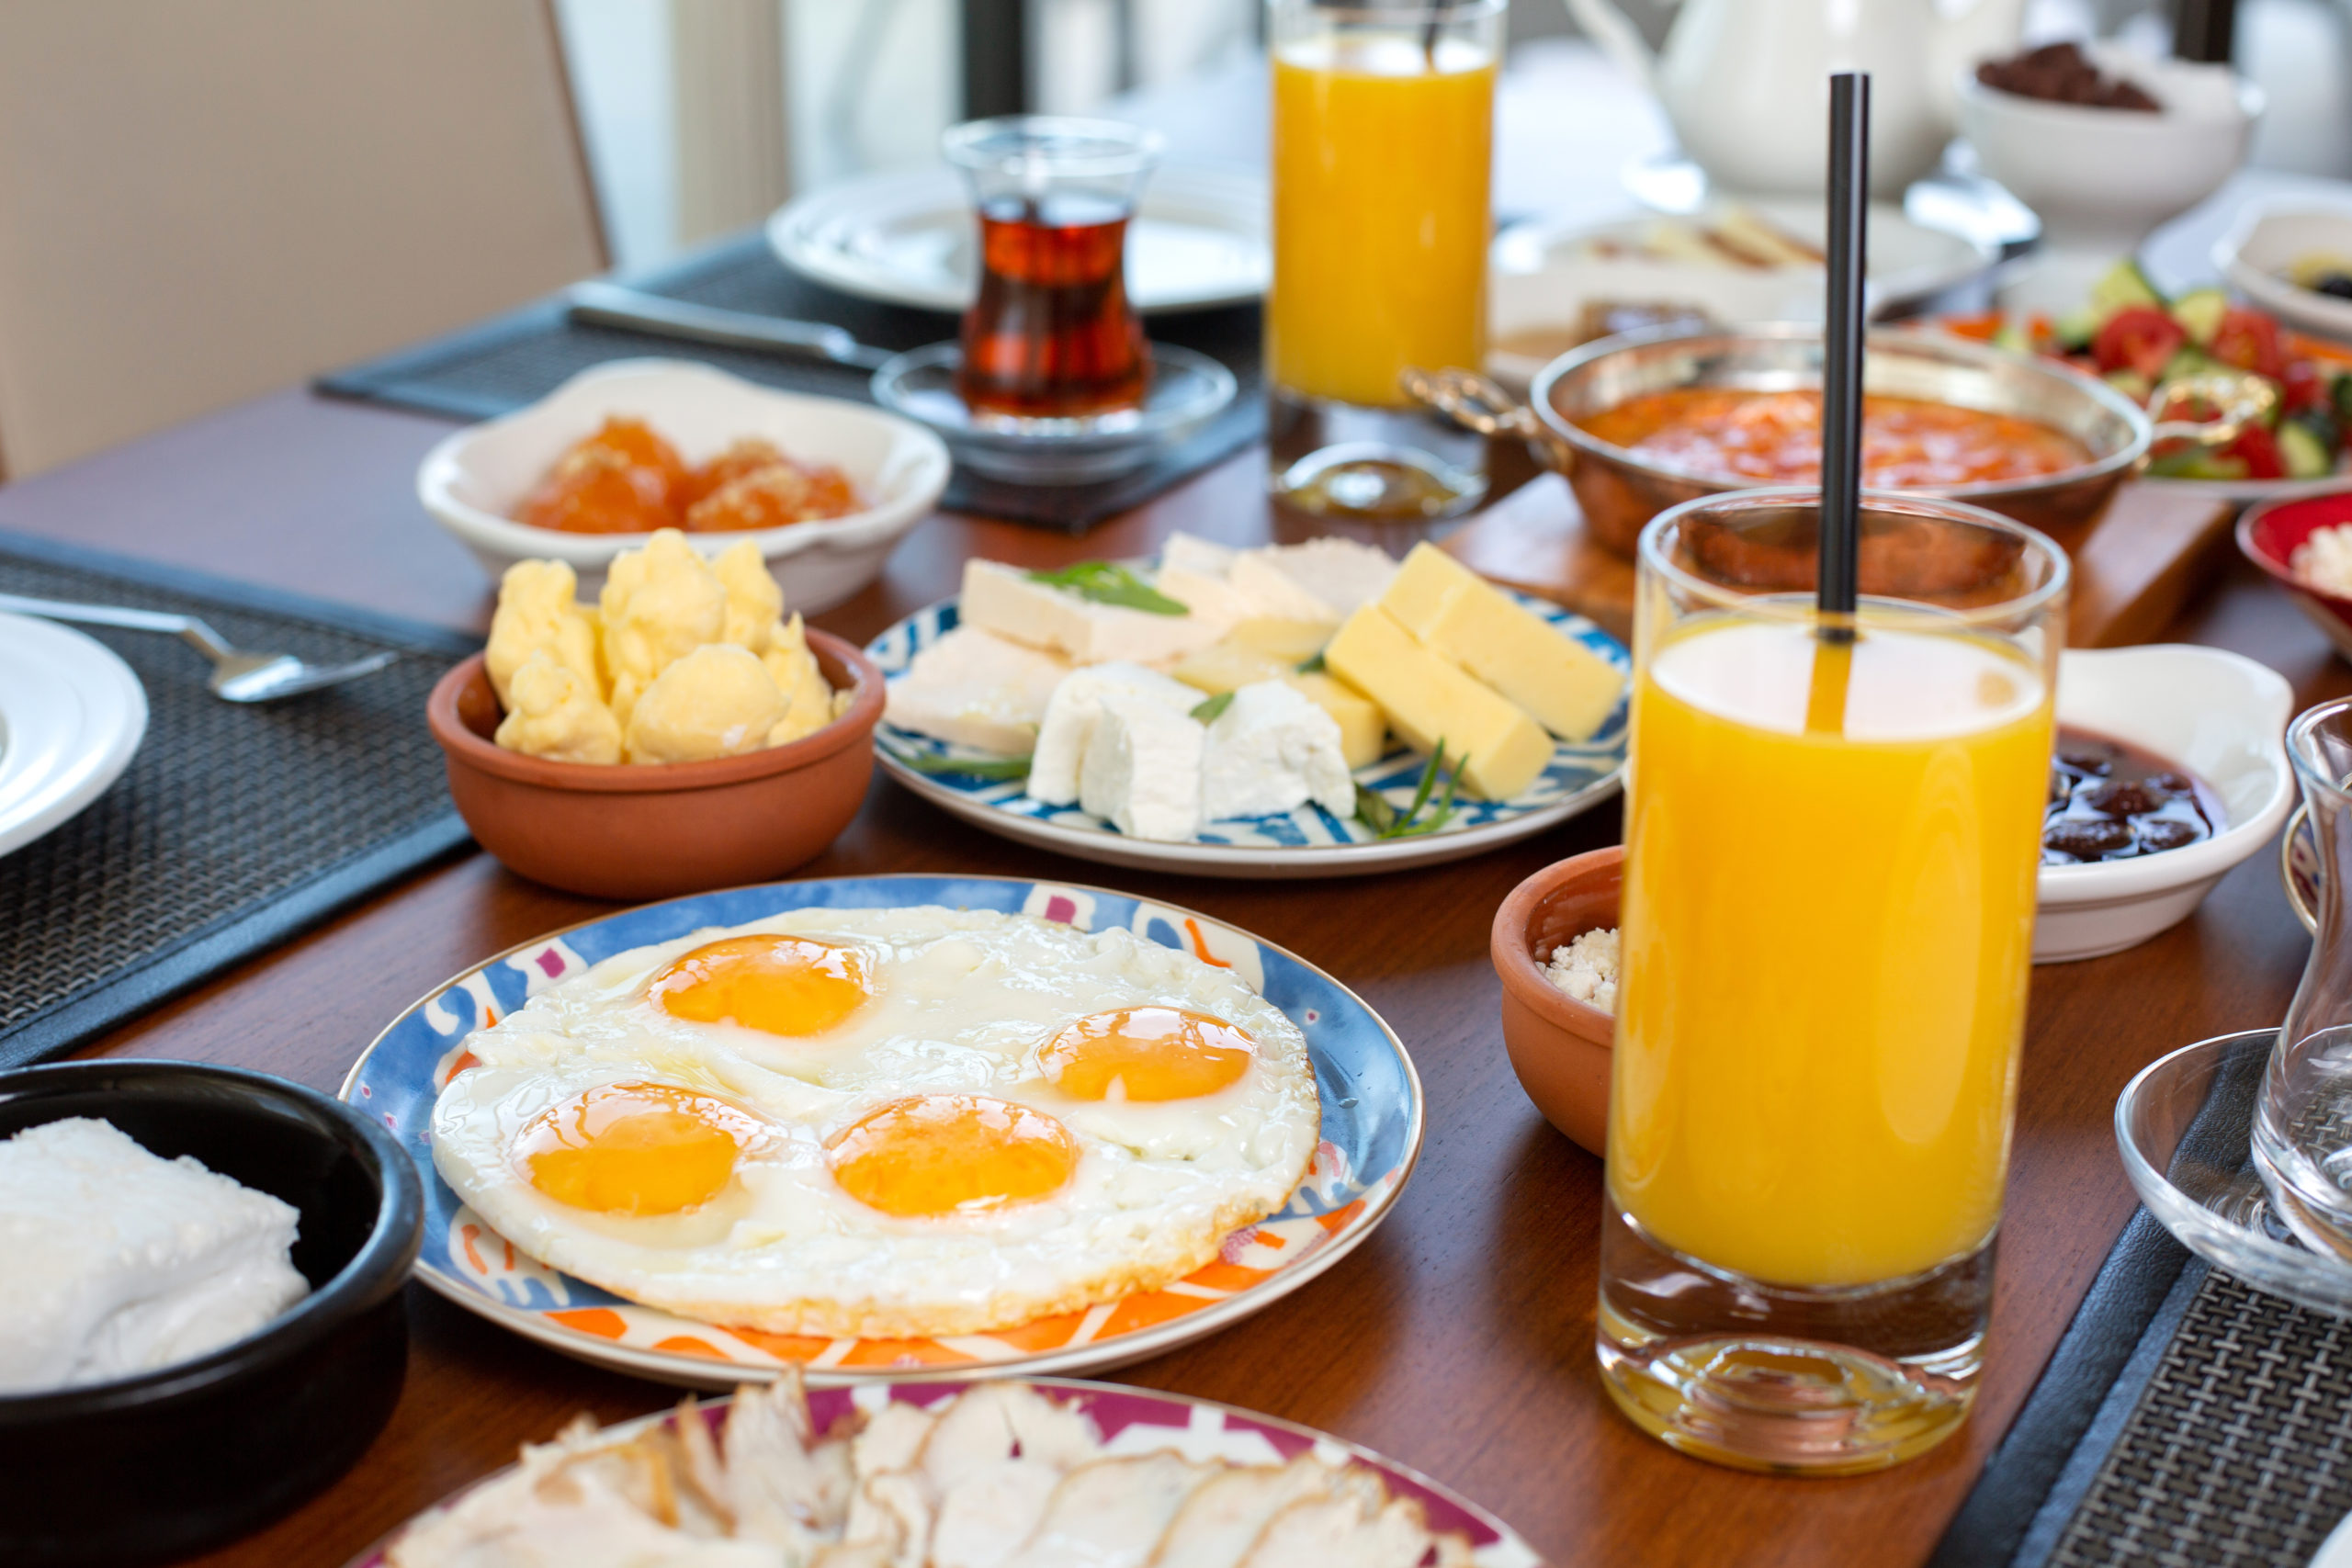 front-view-breakfast-table-with-eggs-buns-cheese-fresh-juice-restaurant-during-daytime-food-meal-breakfast (1)